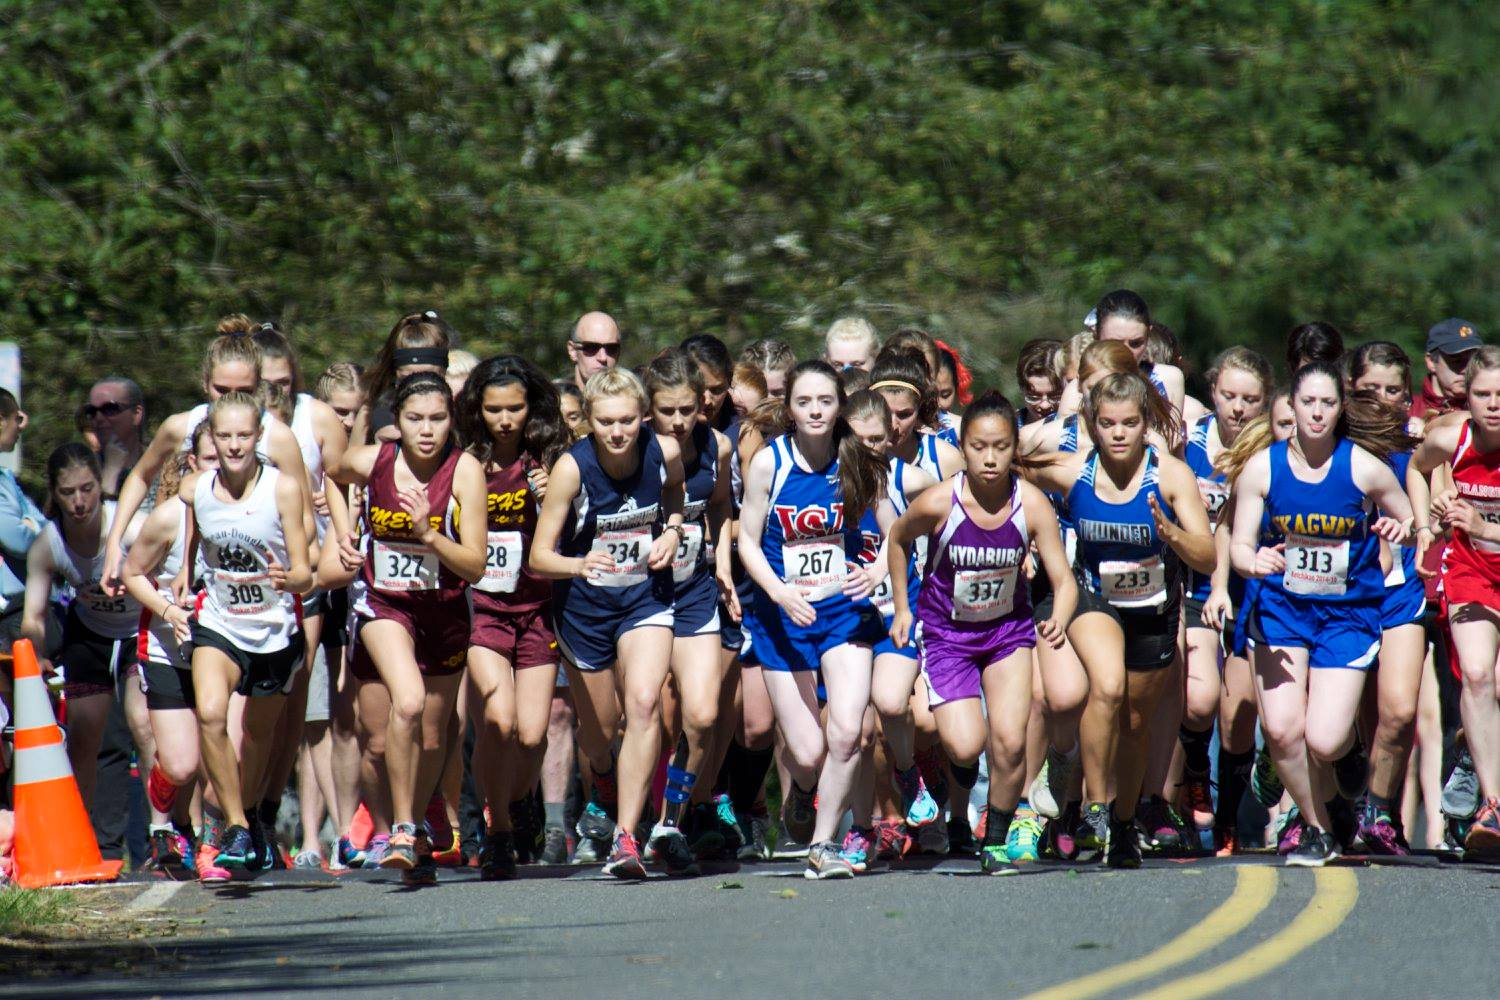 PHS runner Kayleigh Eddy, #234, leads at the start of Saturday's race in Ketchikan. (Photo courtesy of Brad Taylor and PHS cross country)